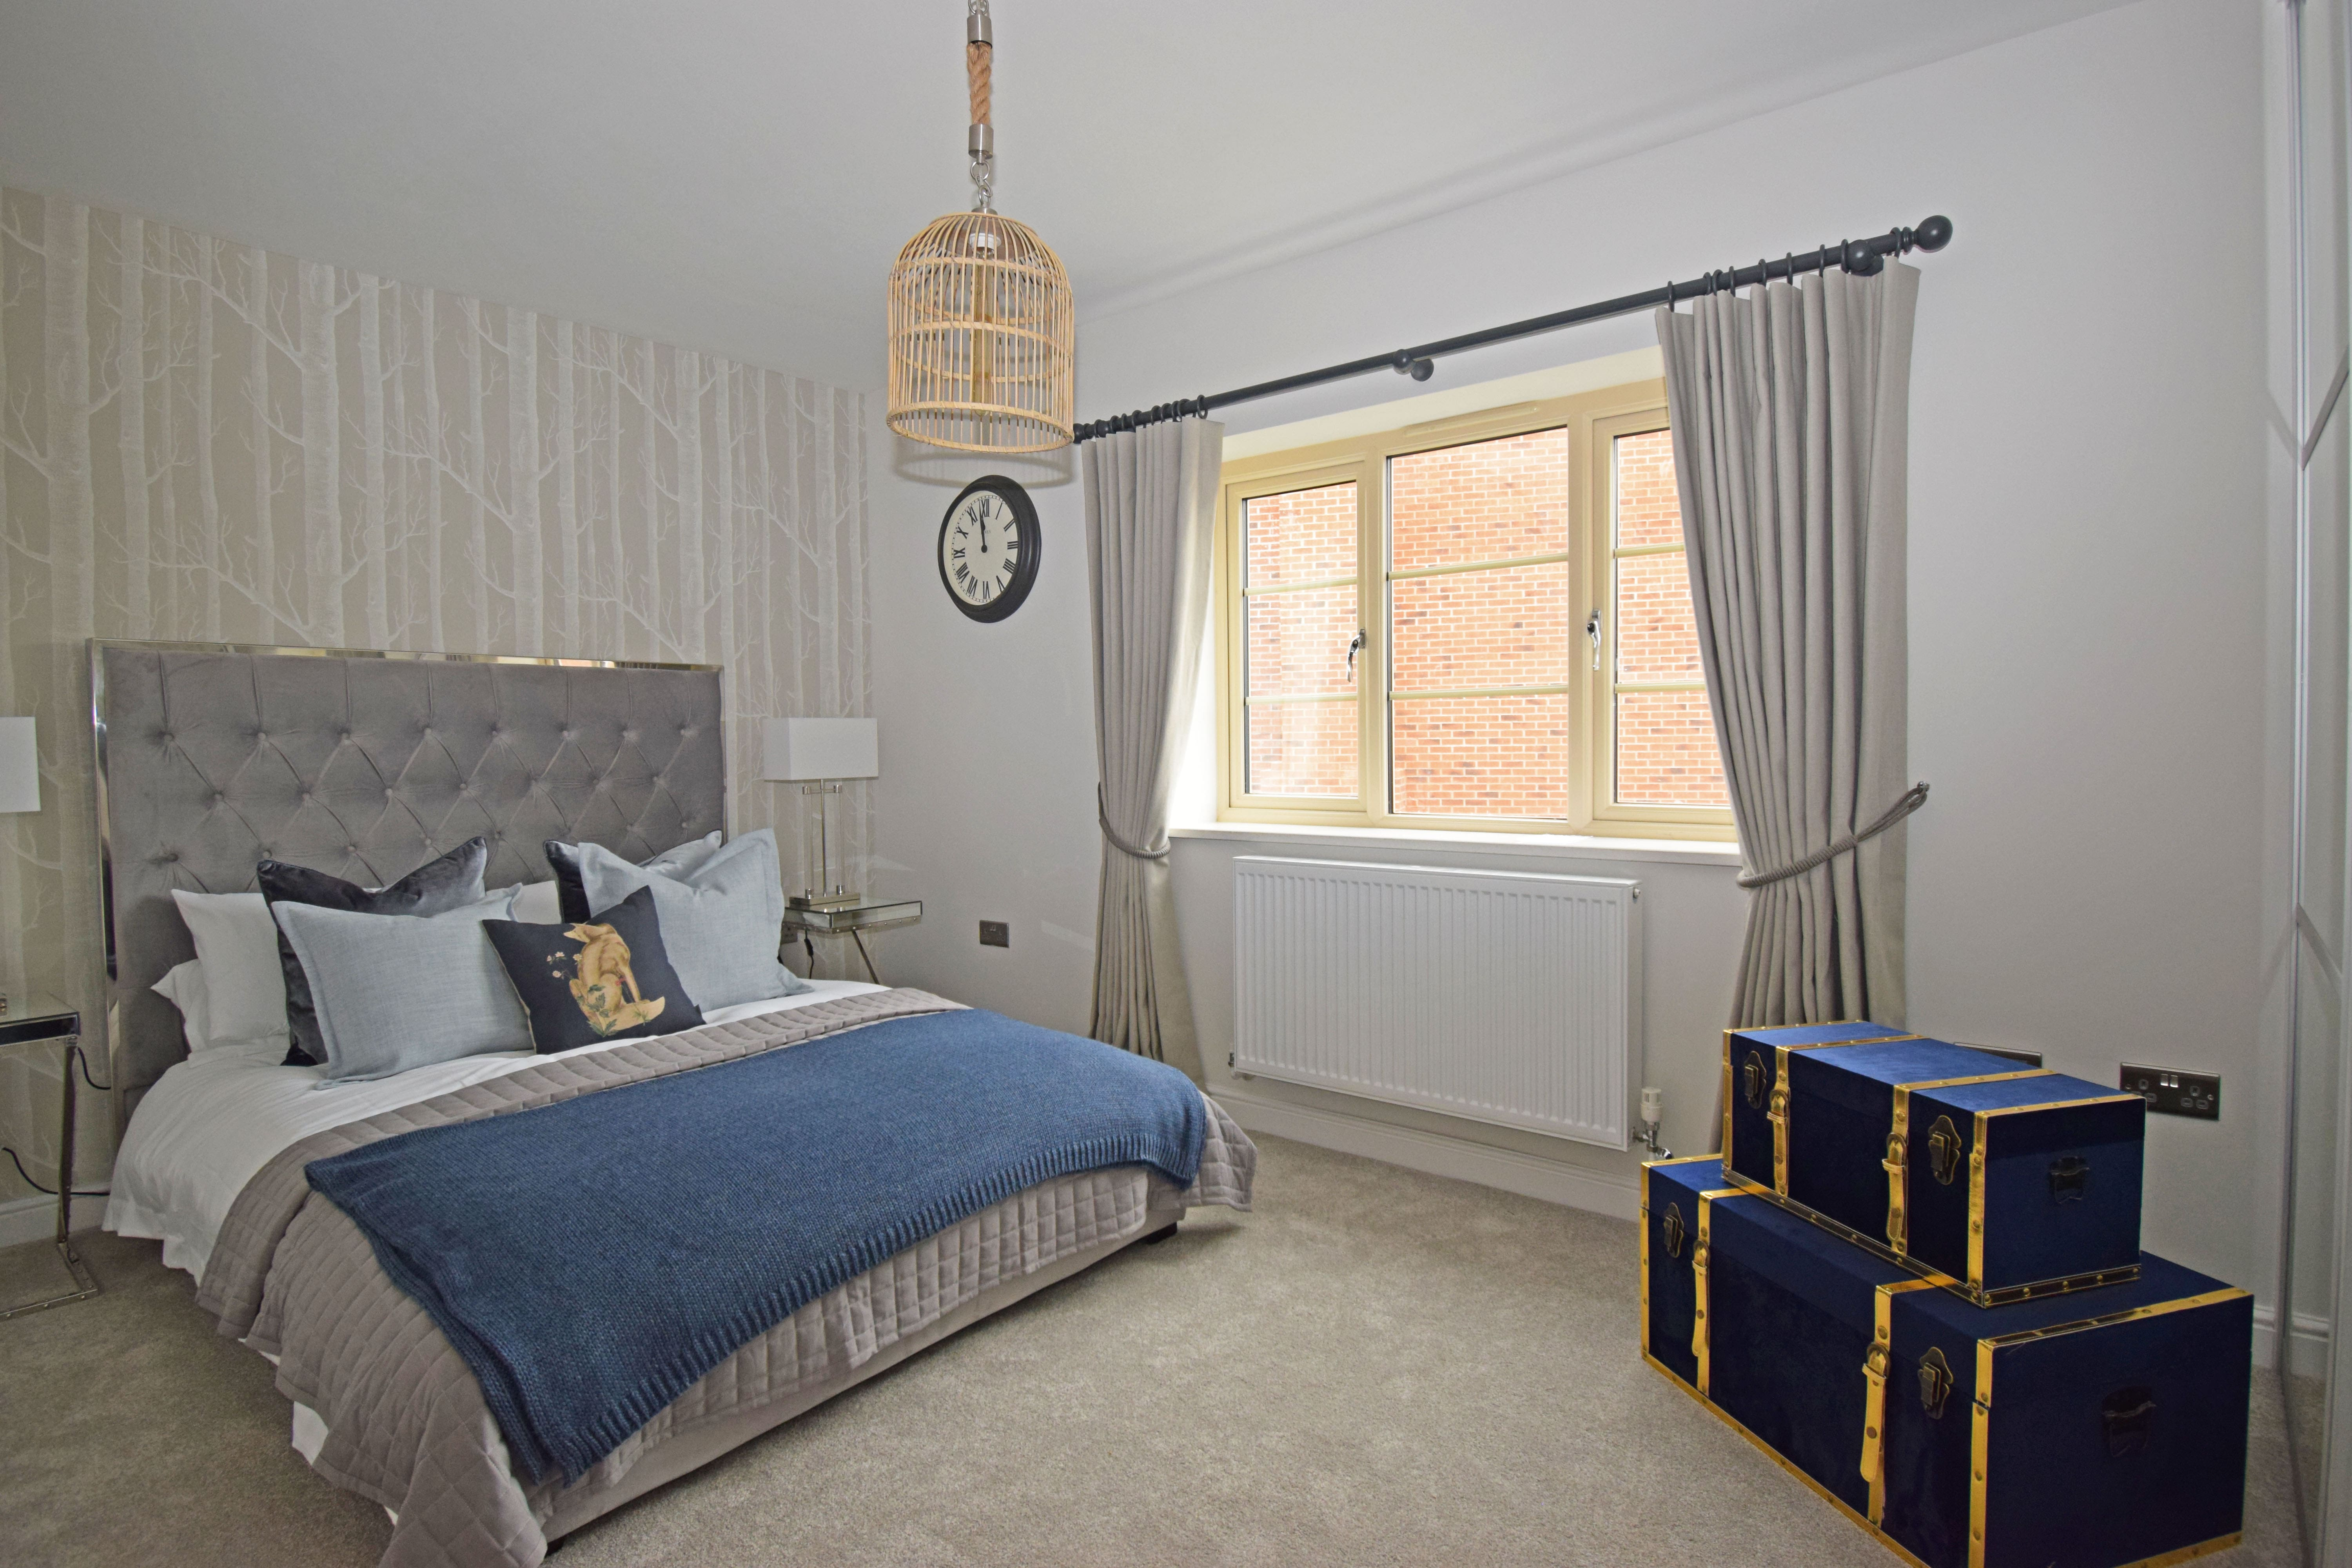 Plot 1 Peachley Court, bed 2-min